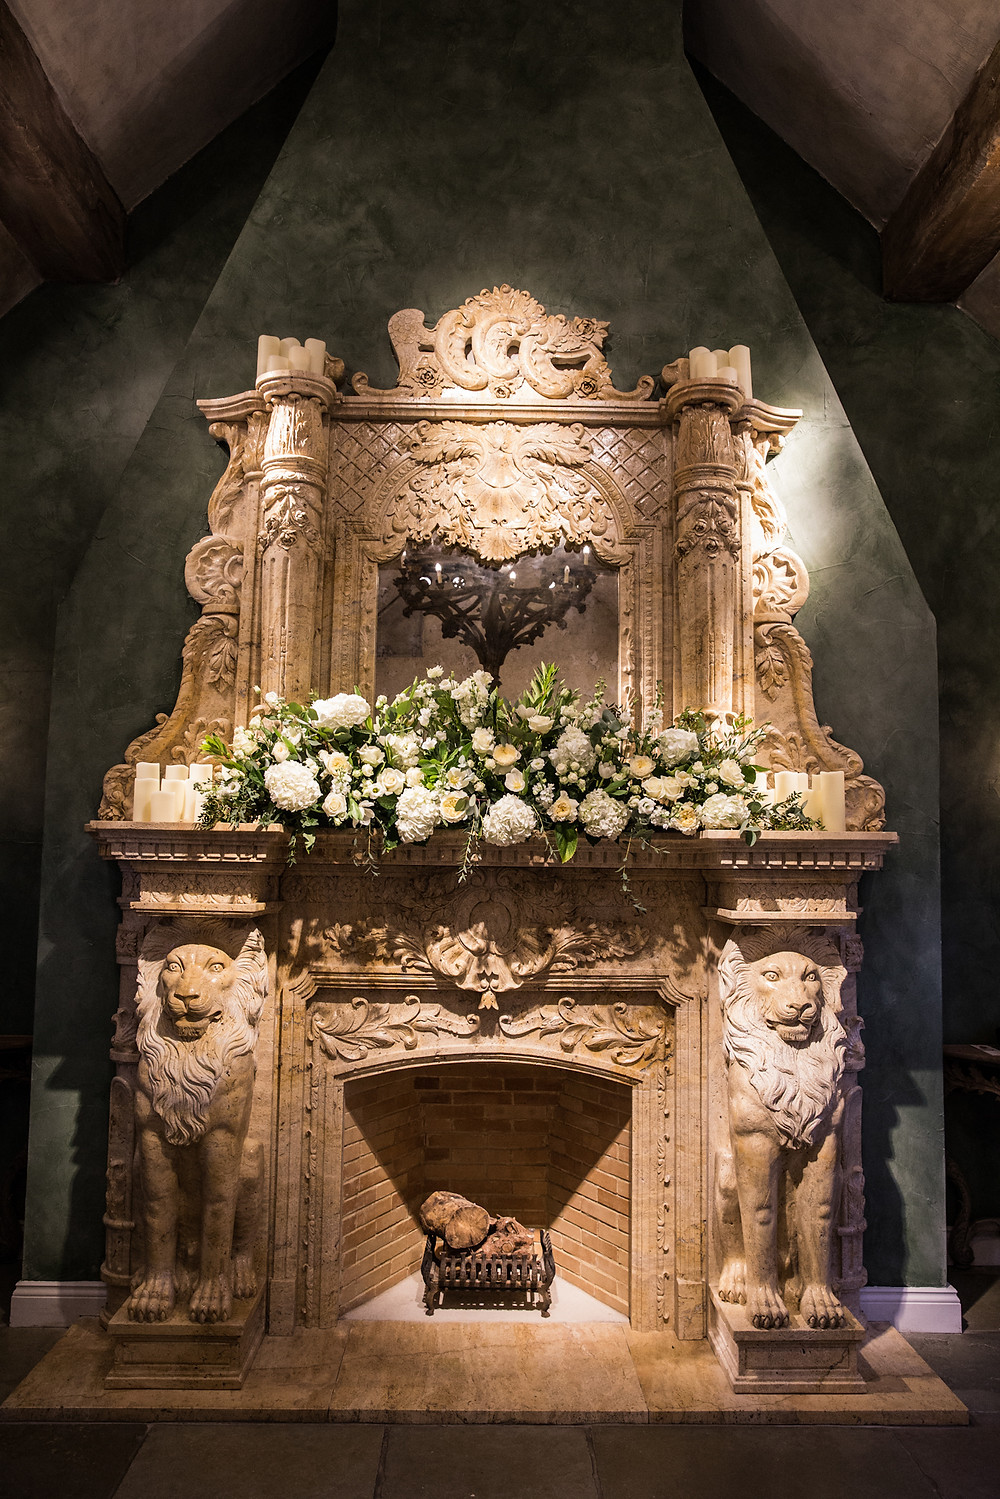 Le Petit CHateau Fireplace wedding ceremony dressed with white and green flowers